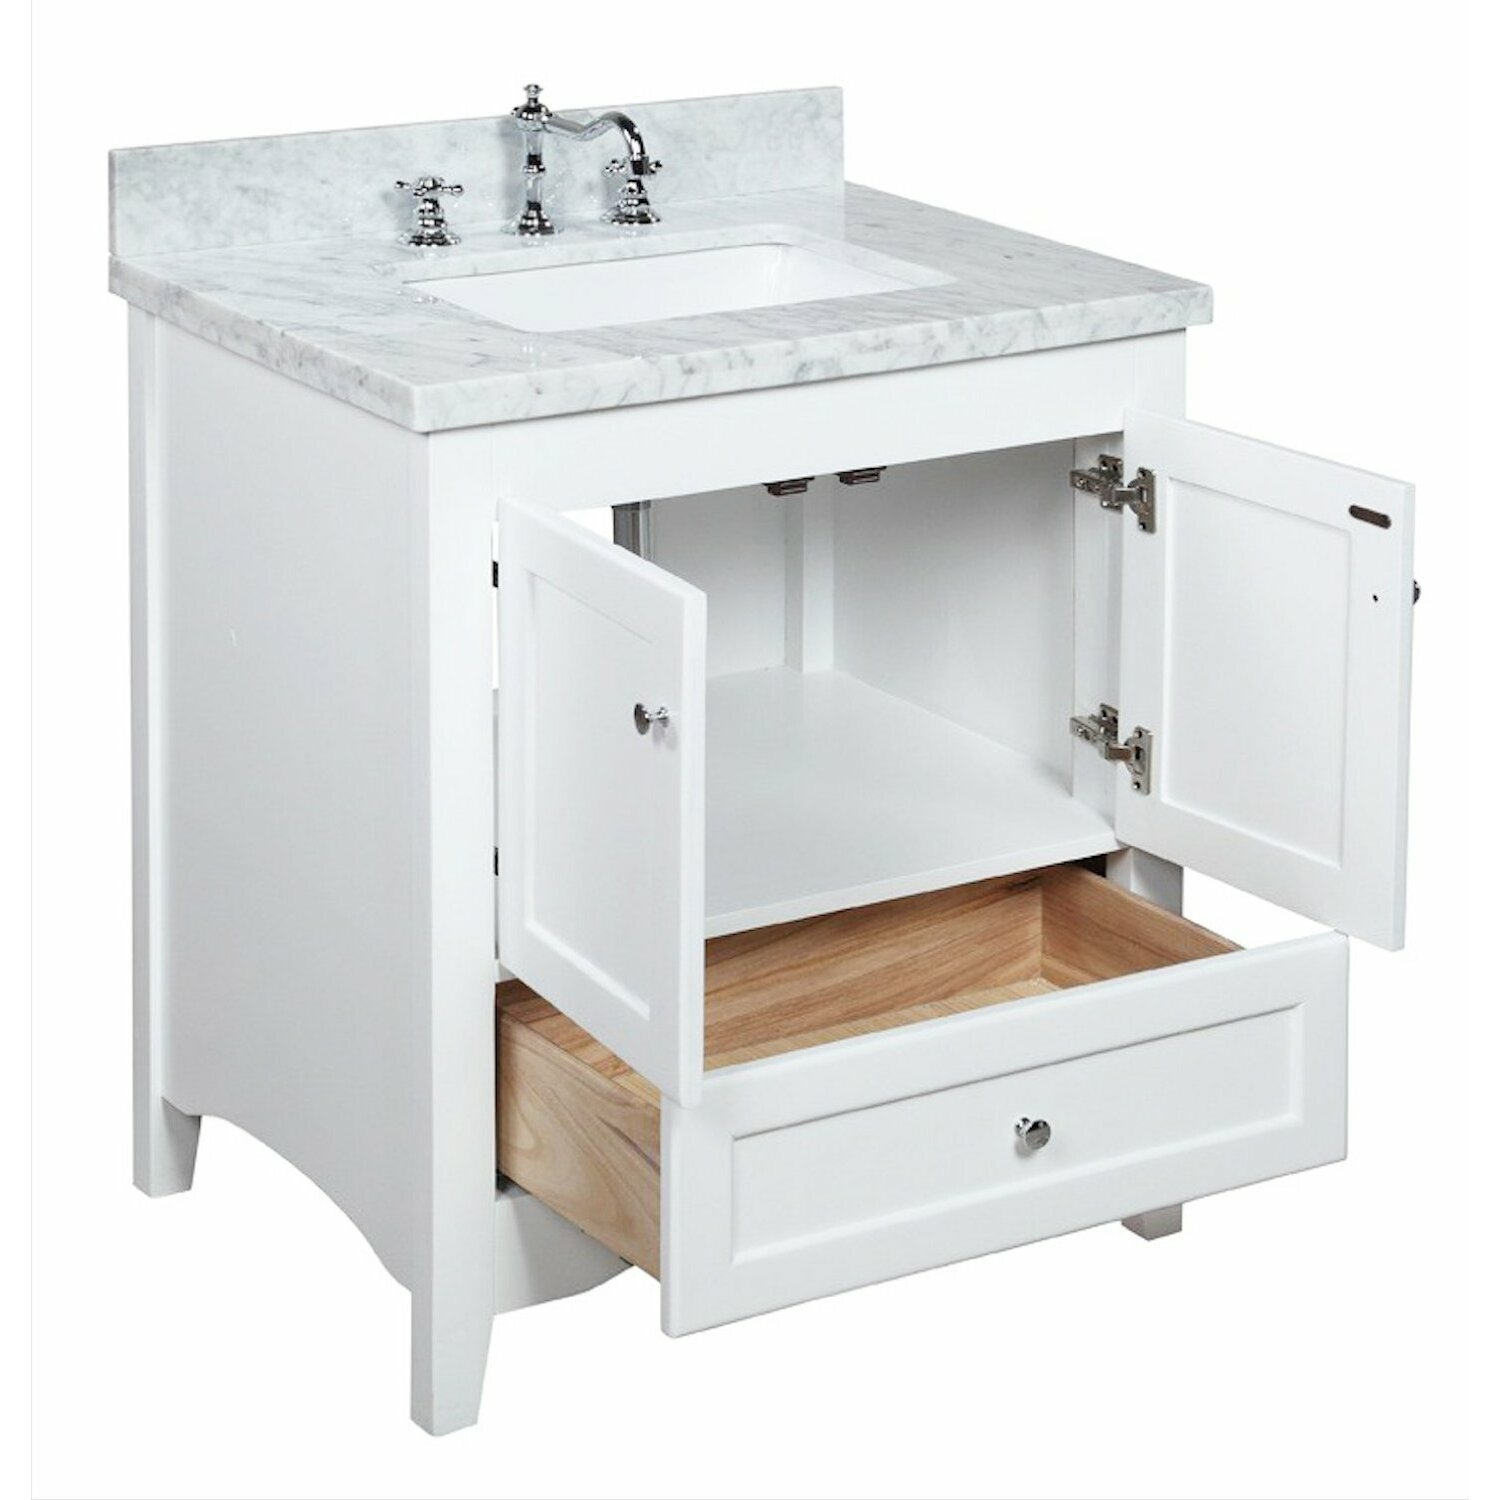 Kbc abbey 30 single bathroom vanity set reviews wayfair for Restroom vanity